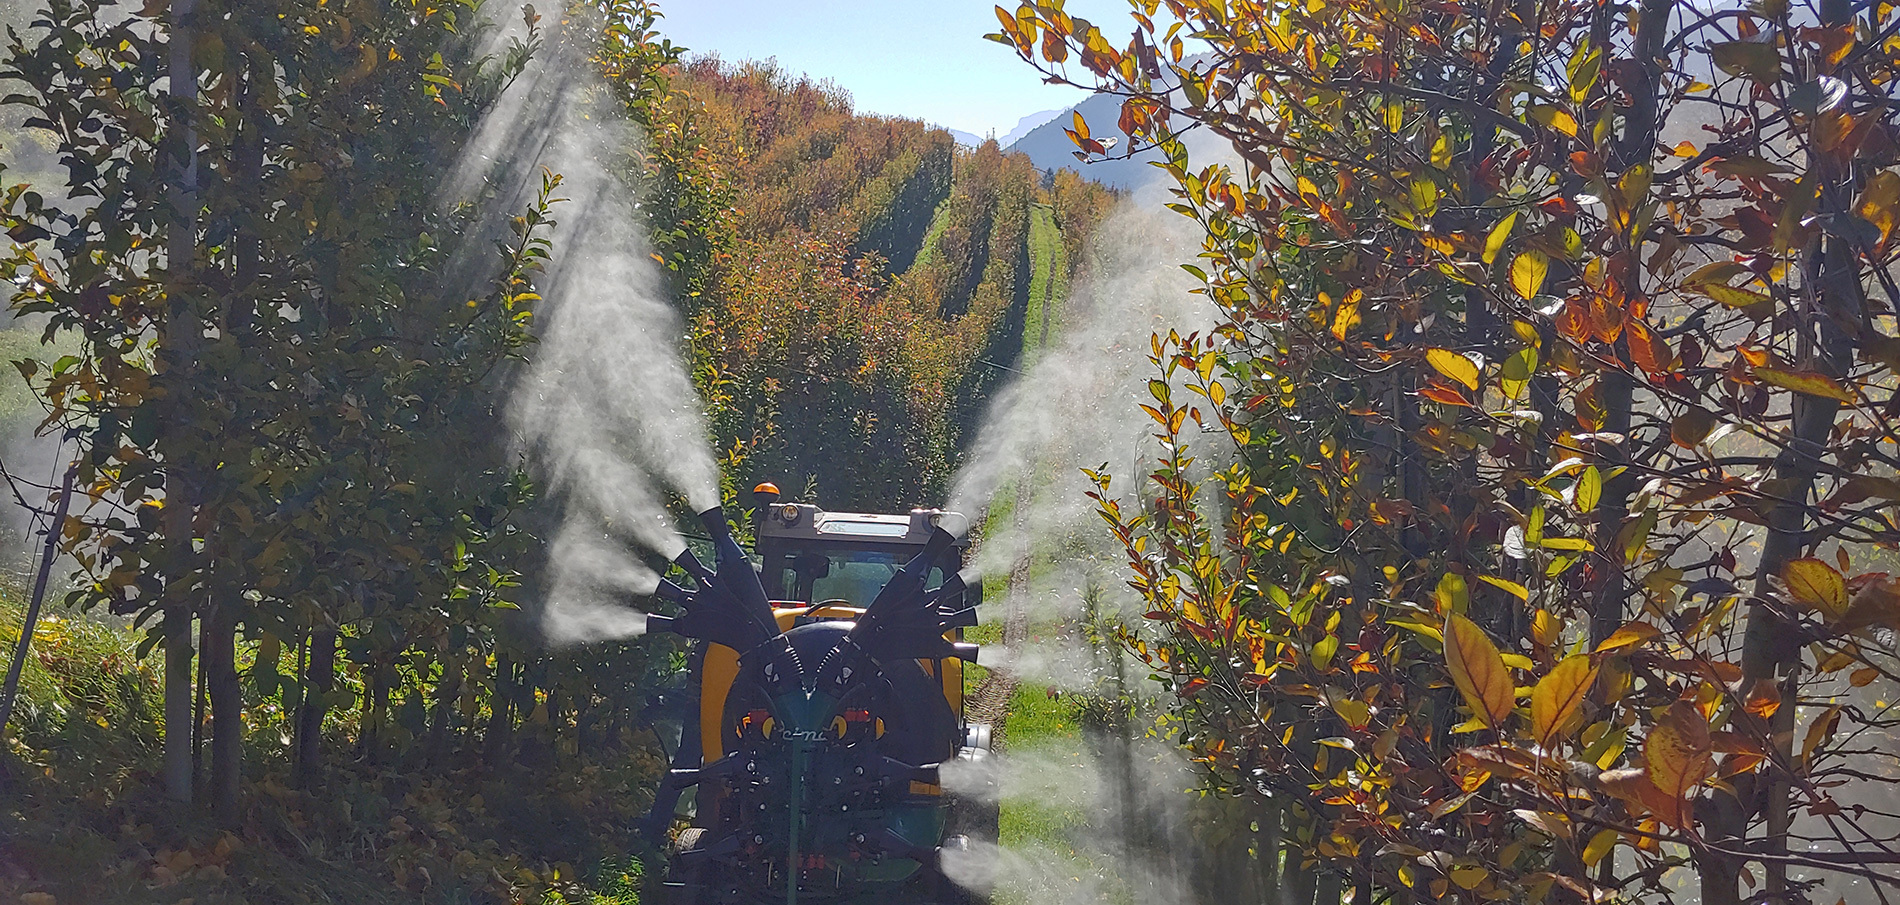 3-point mounted sprayer - low volume - 4 lower cannons and upper double Olive sprayhead - Apple